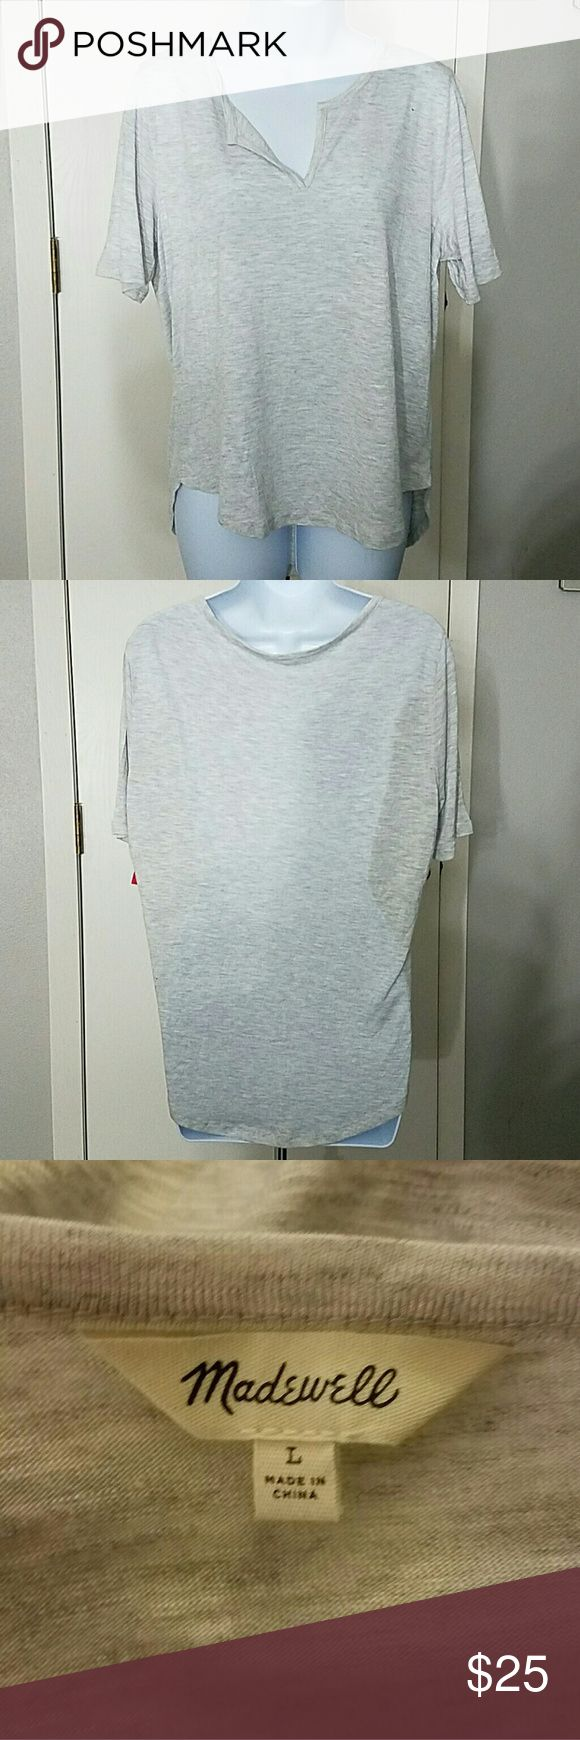 Madewell grey short sleeve top size L Heathered grey color High low detail Soft & comfortable fabric A basic must have item Madewell Tops Tees - Short Sleeve